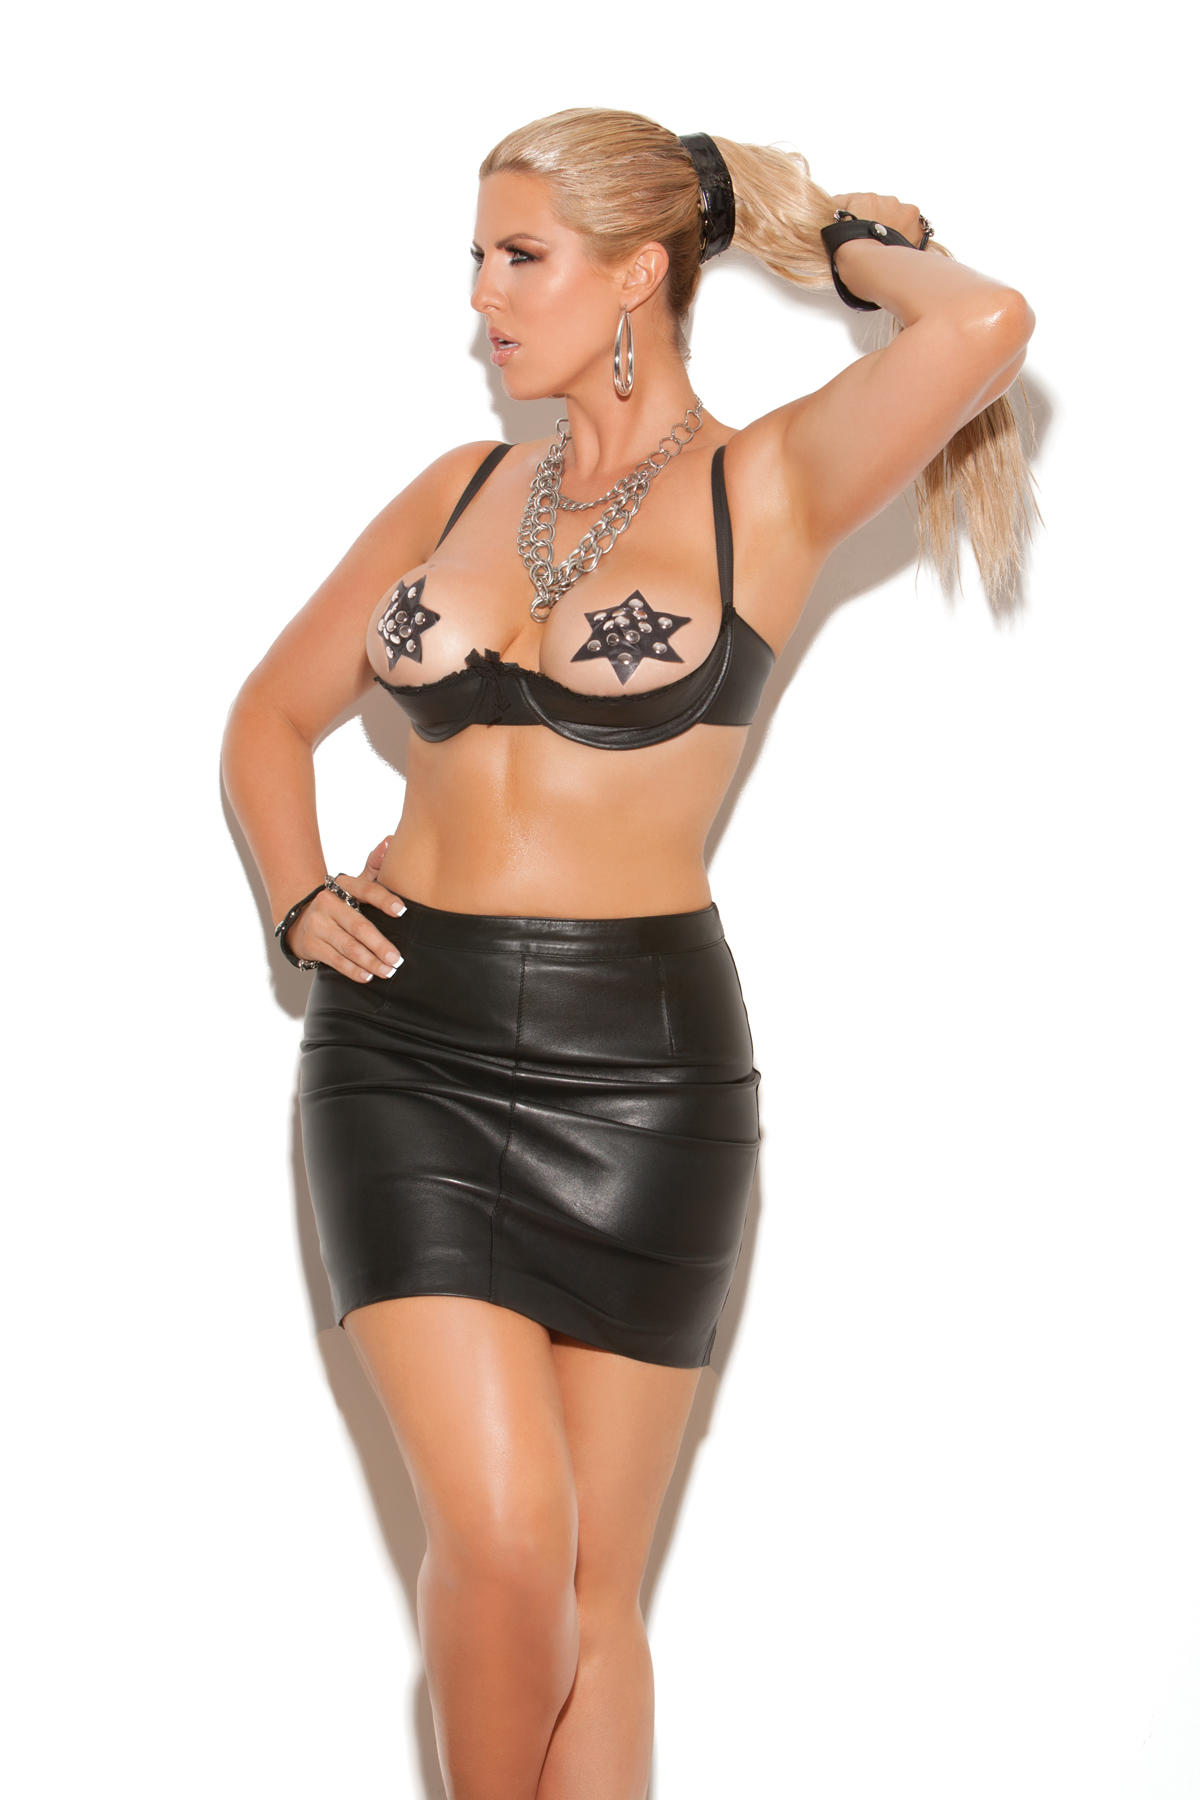 Plus Size Leather Cupless Bra with lace trim from Elegant Moment